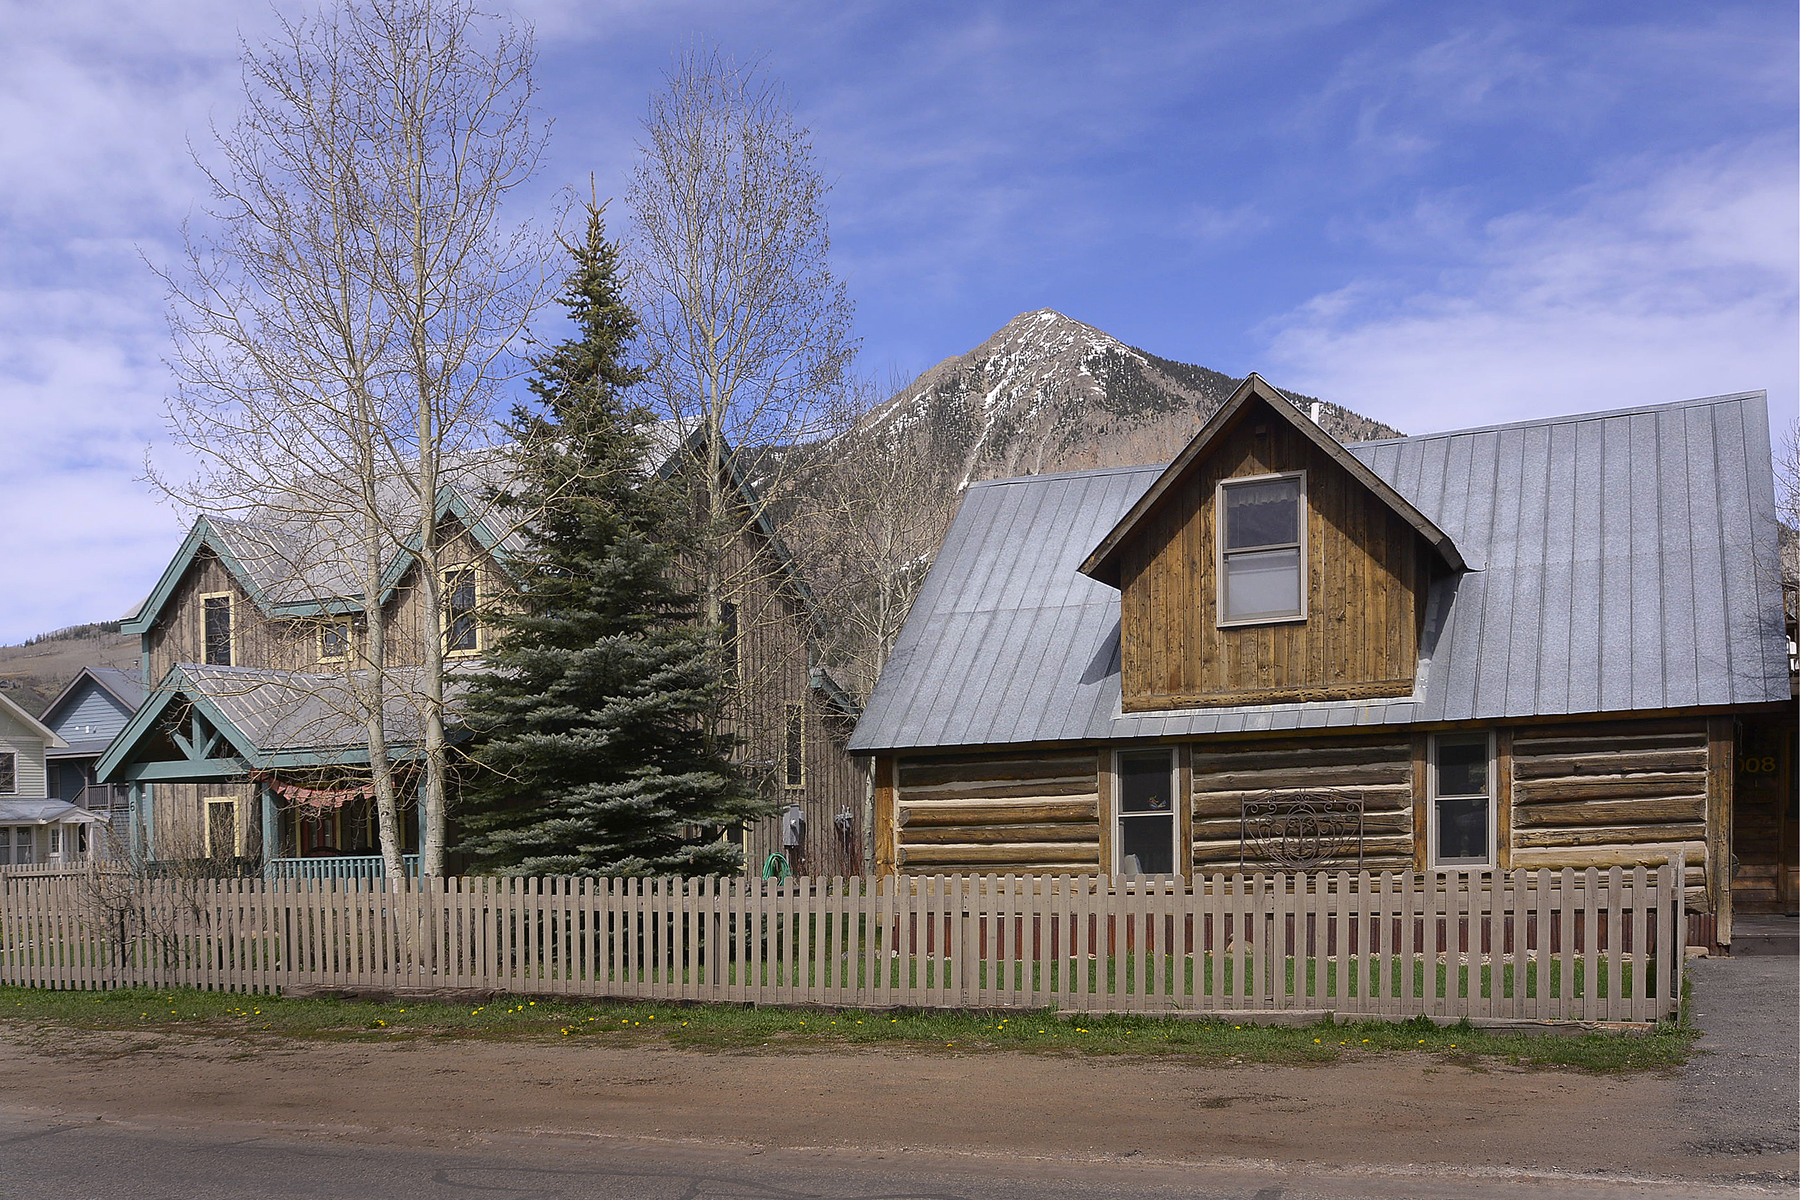 獨棟家庭住宅 為 出售 在 Restored Historic Cabin & New Home 6 & 8 Seventh Street Crested Butte, 科羅拉多州, 81224 美國